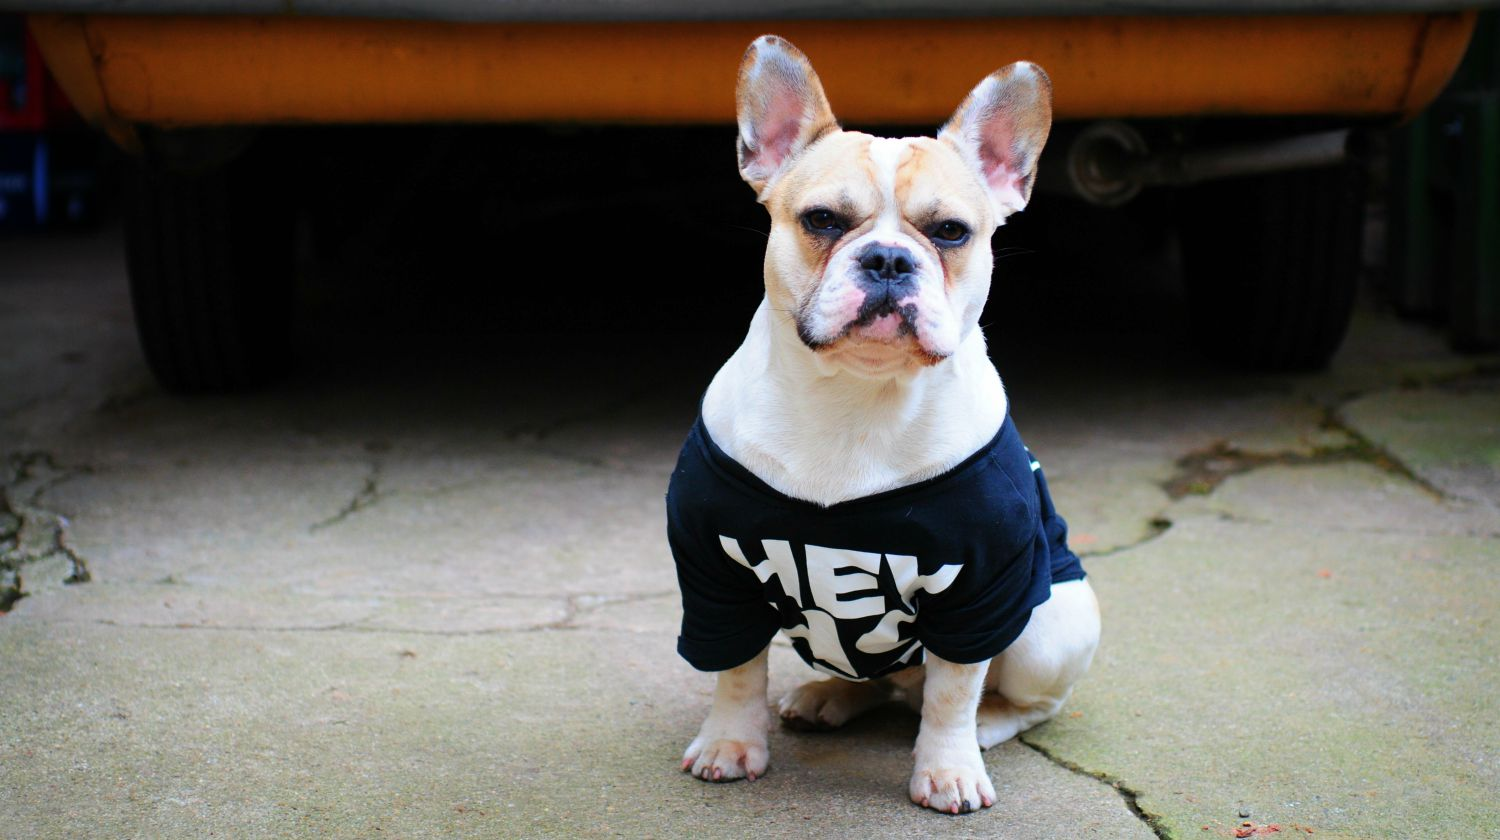 Featured | White dog standing on ground | How To Make a DIY Dog Shirt | DIY Pet Projects